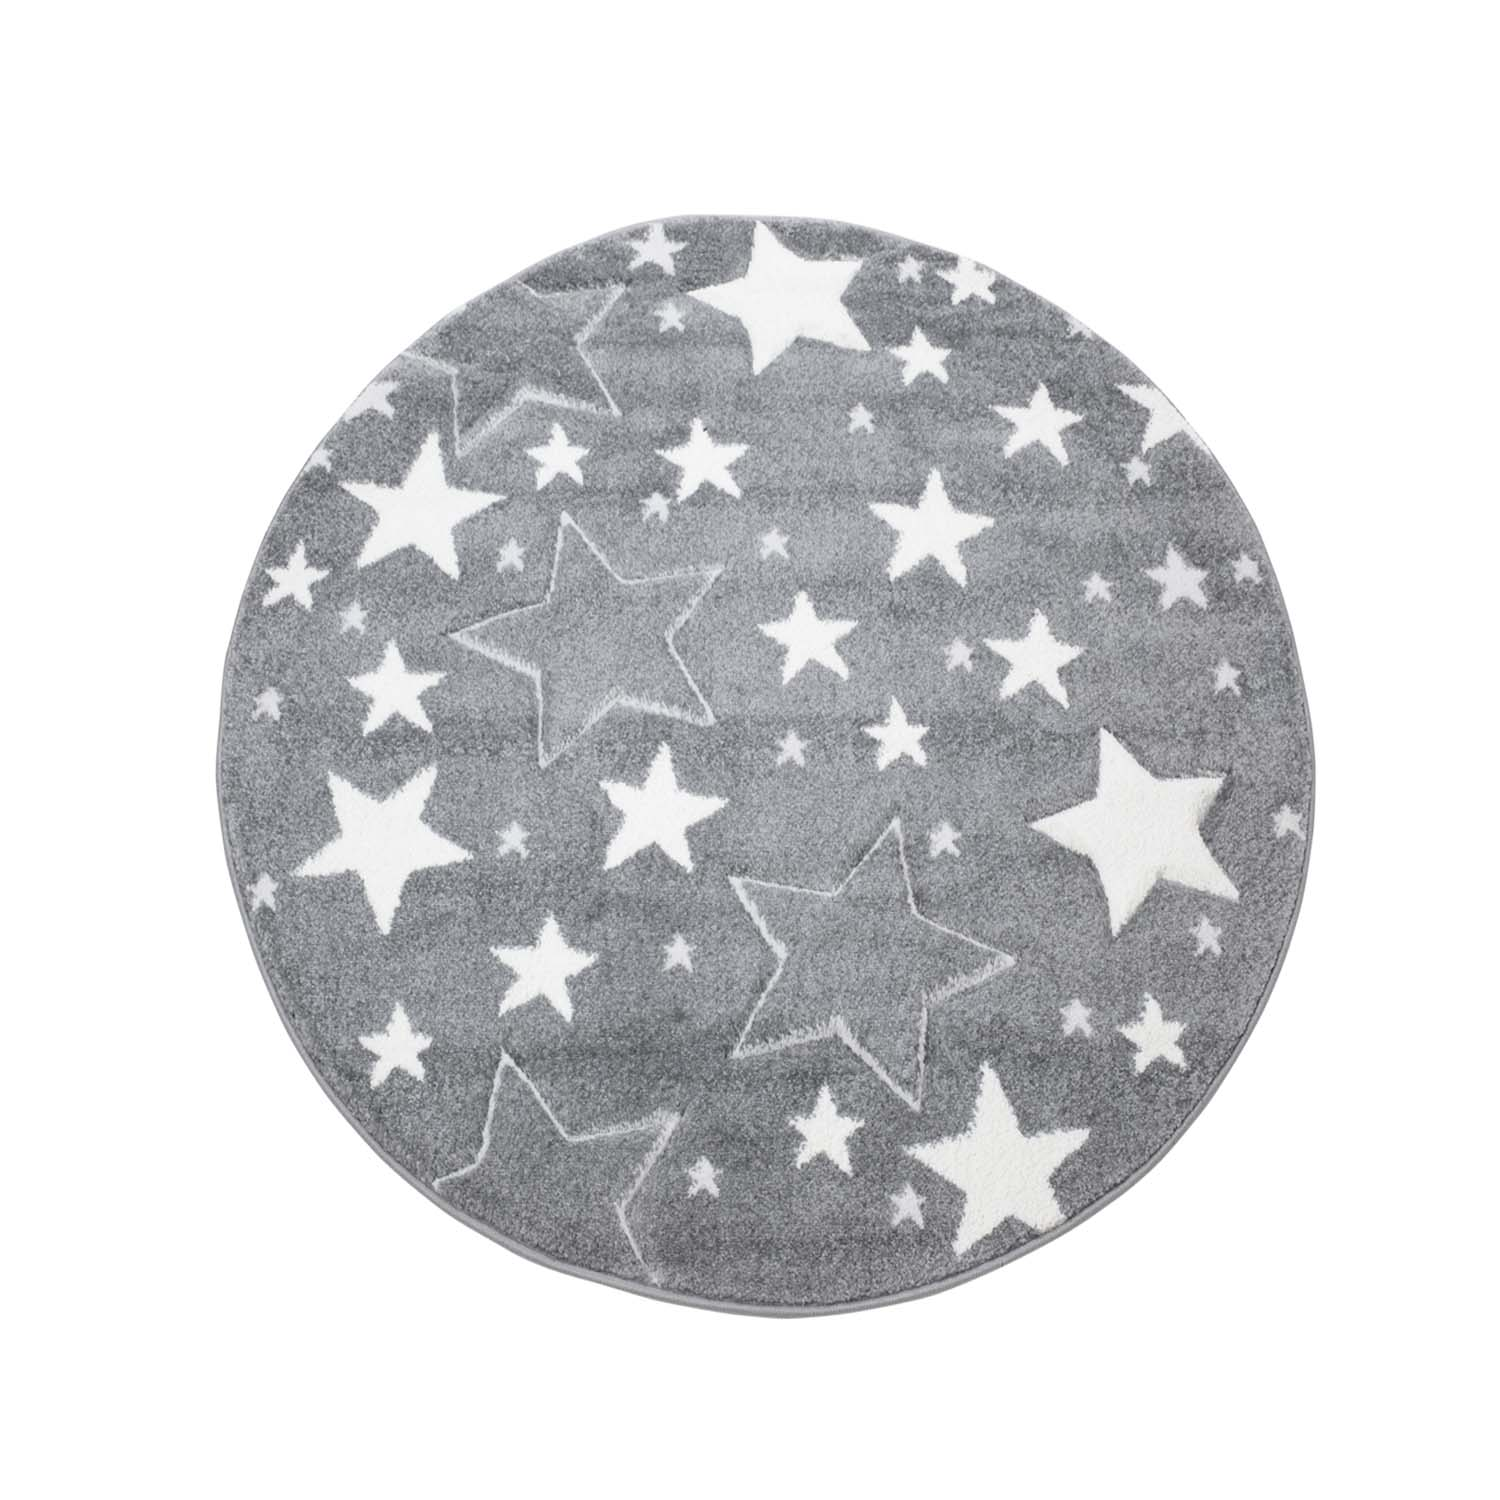 Childrens Rugs Bueno Stars Round Grey